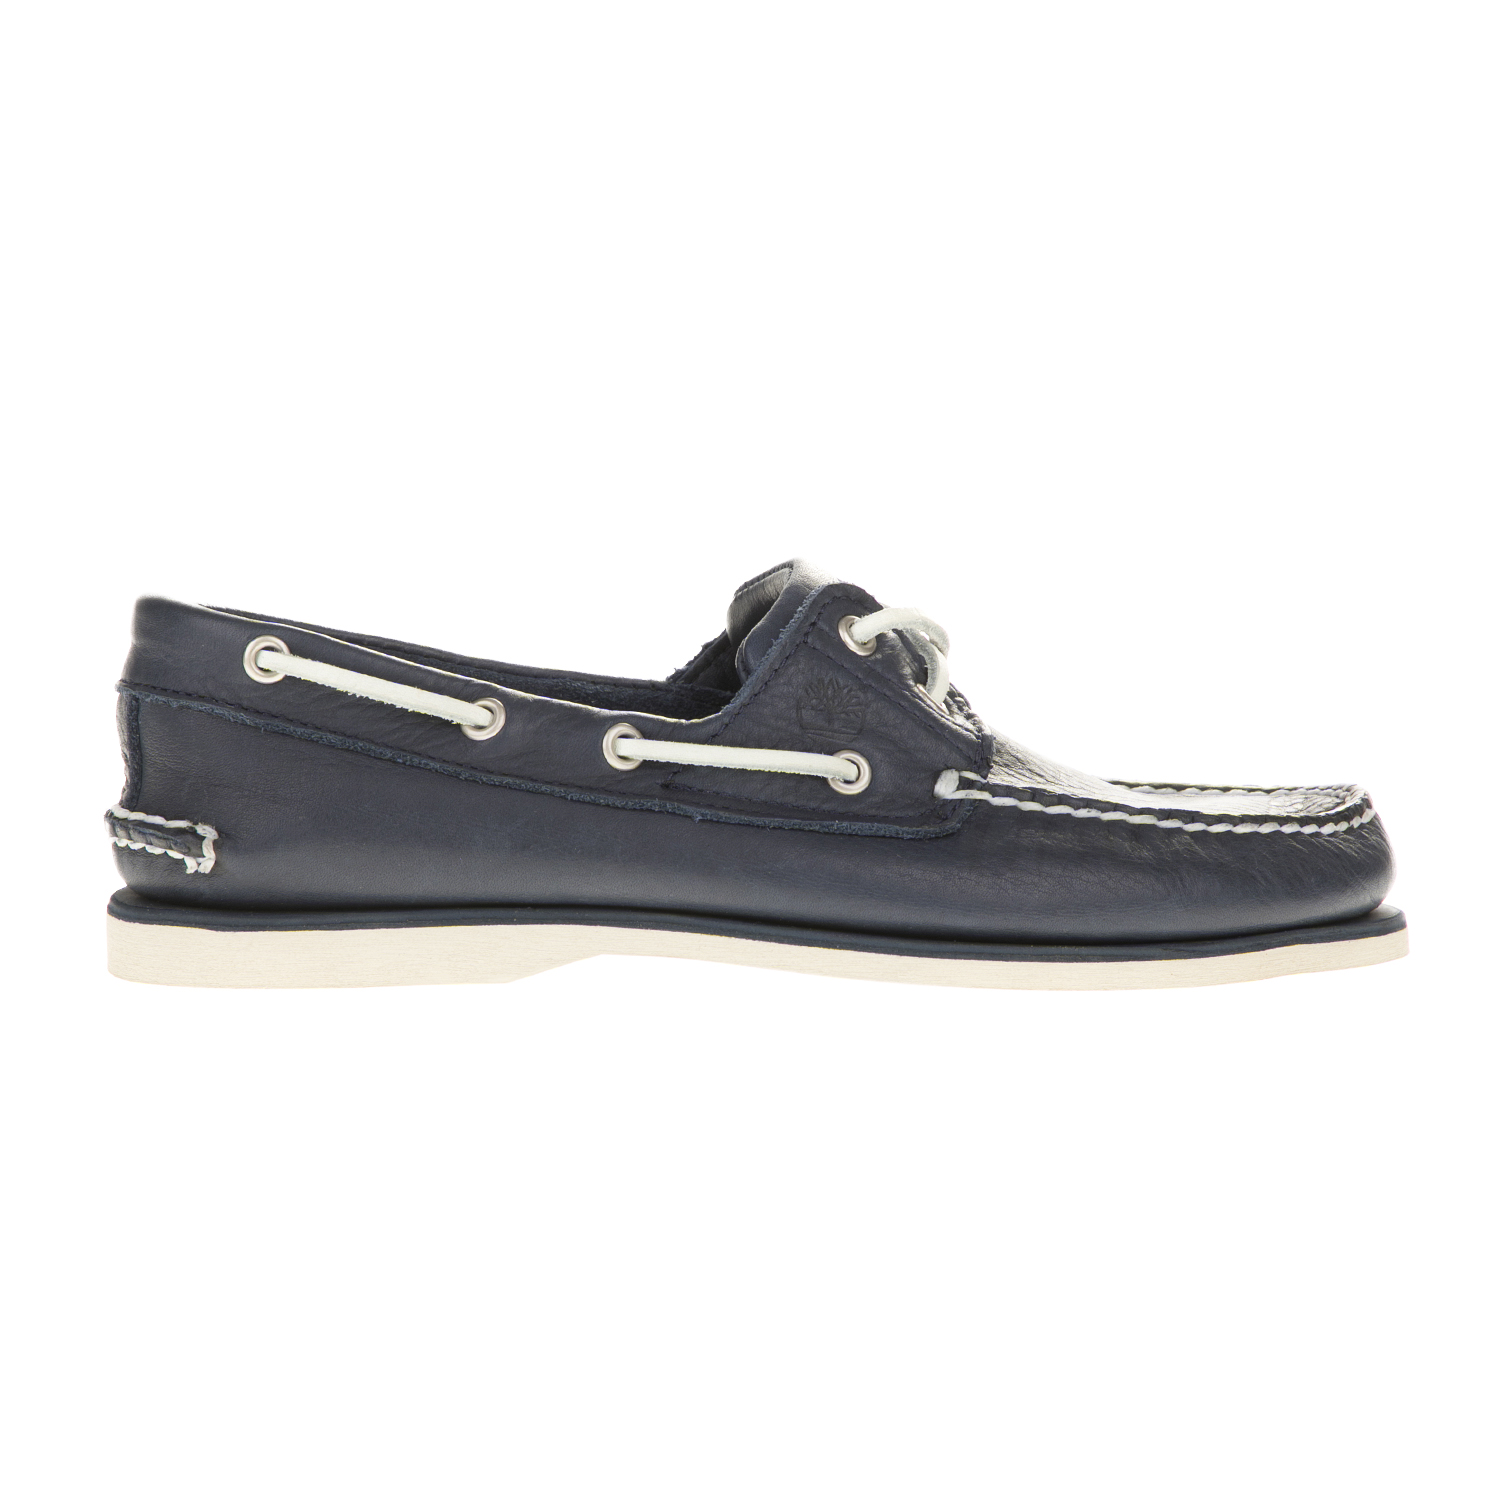 TIMBERLAND - Ανδρικά boat shoes TIMBERLAND A1FHU EYE BOAT μπλε ανδρικά παπούτσια boat shoes